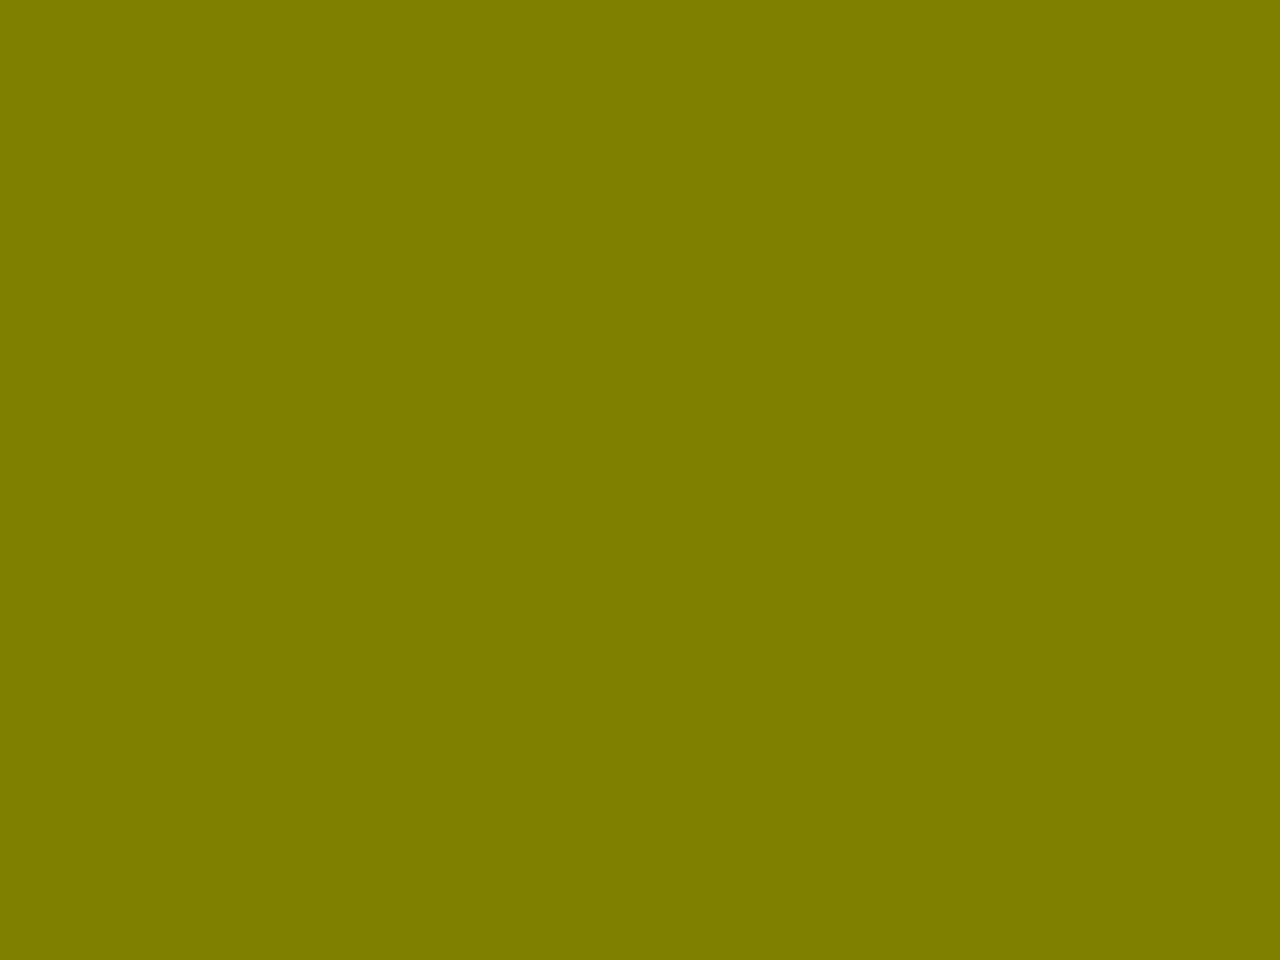 1280x960 Heart Gold Solid Color Background